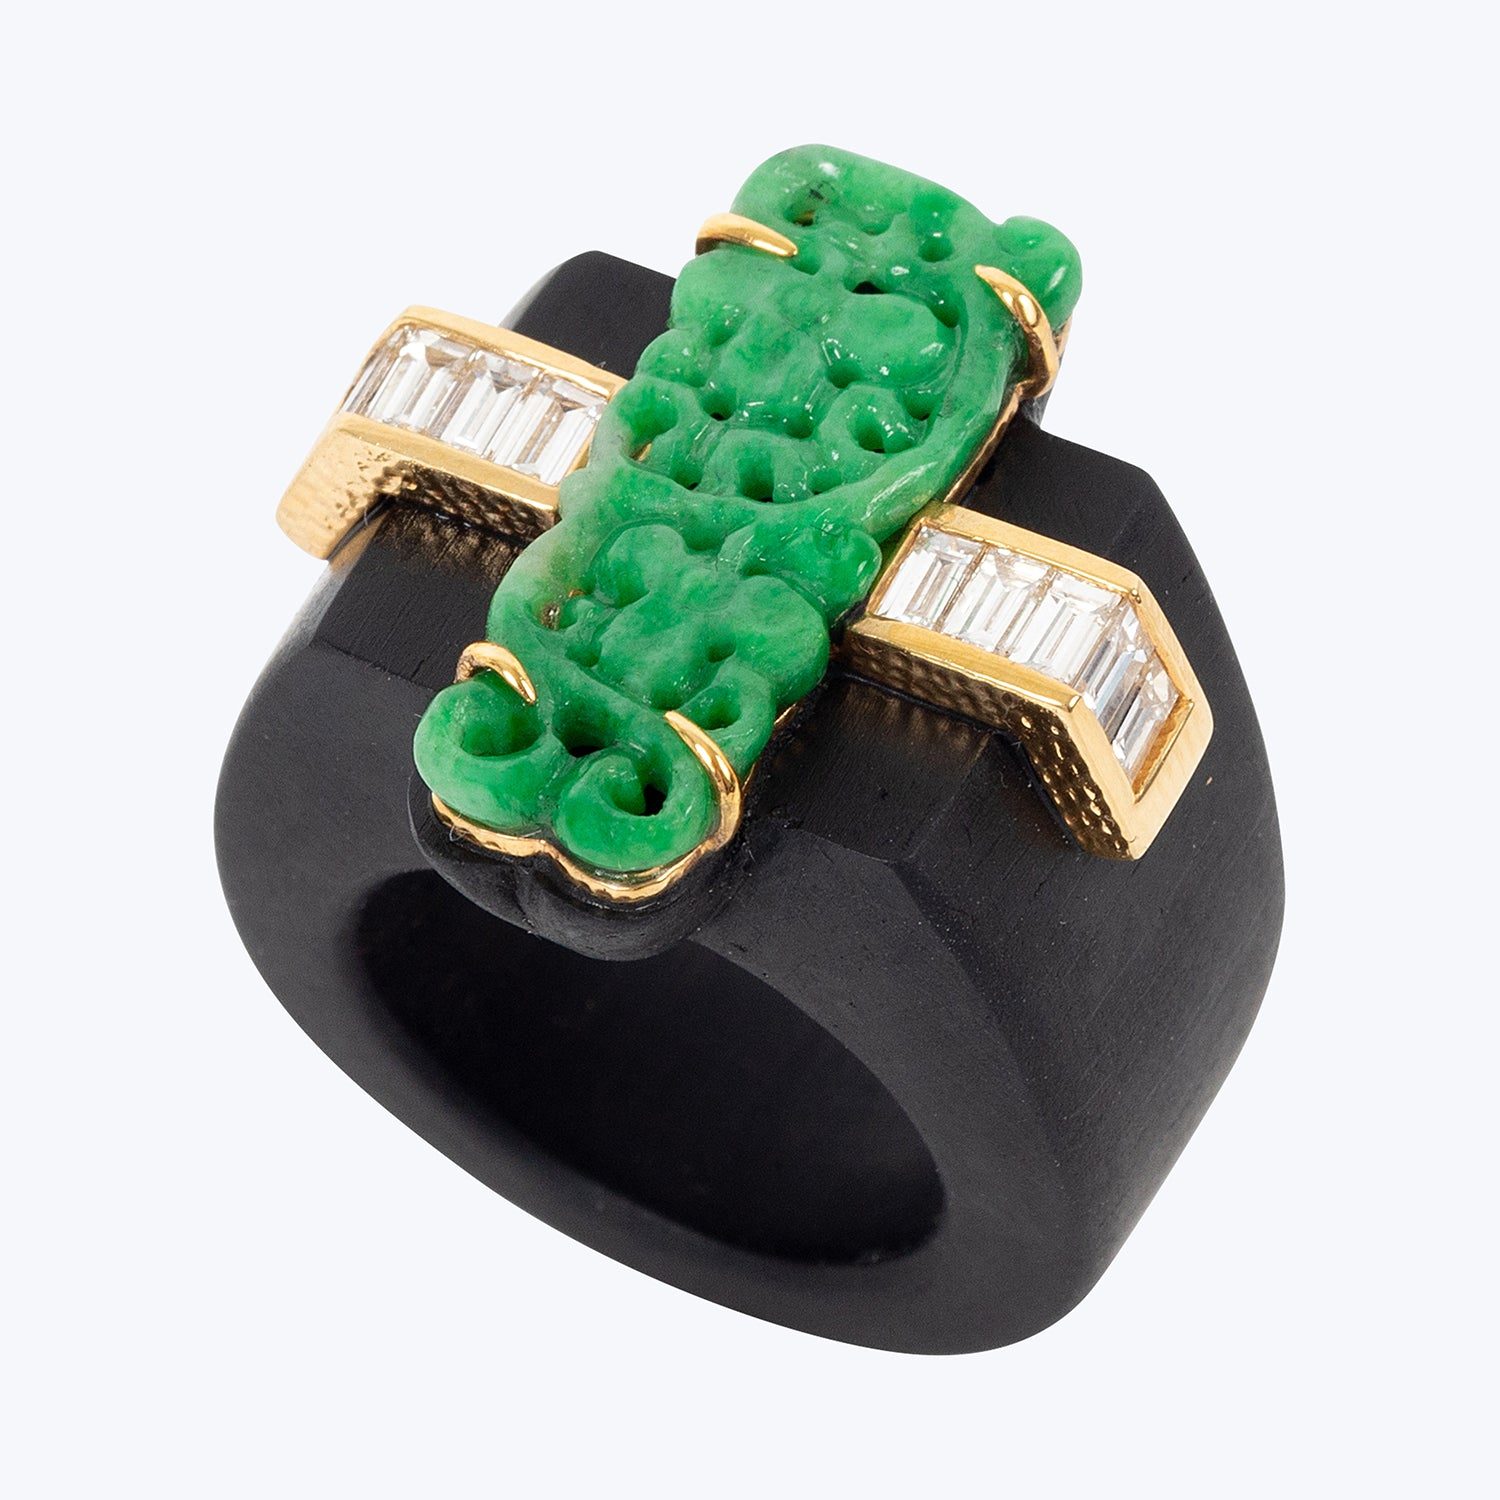 Jade Ring with Baguette Diamond  and Black wood  wt. 12.47 g. # 54